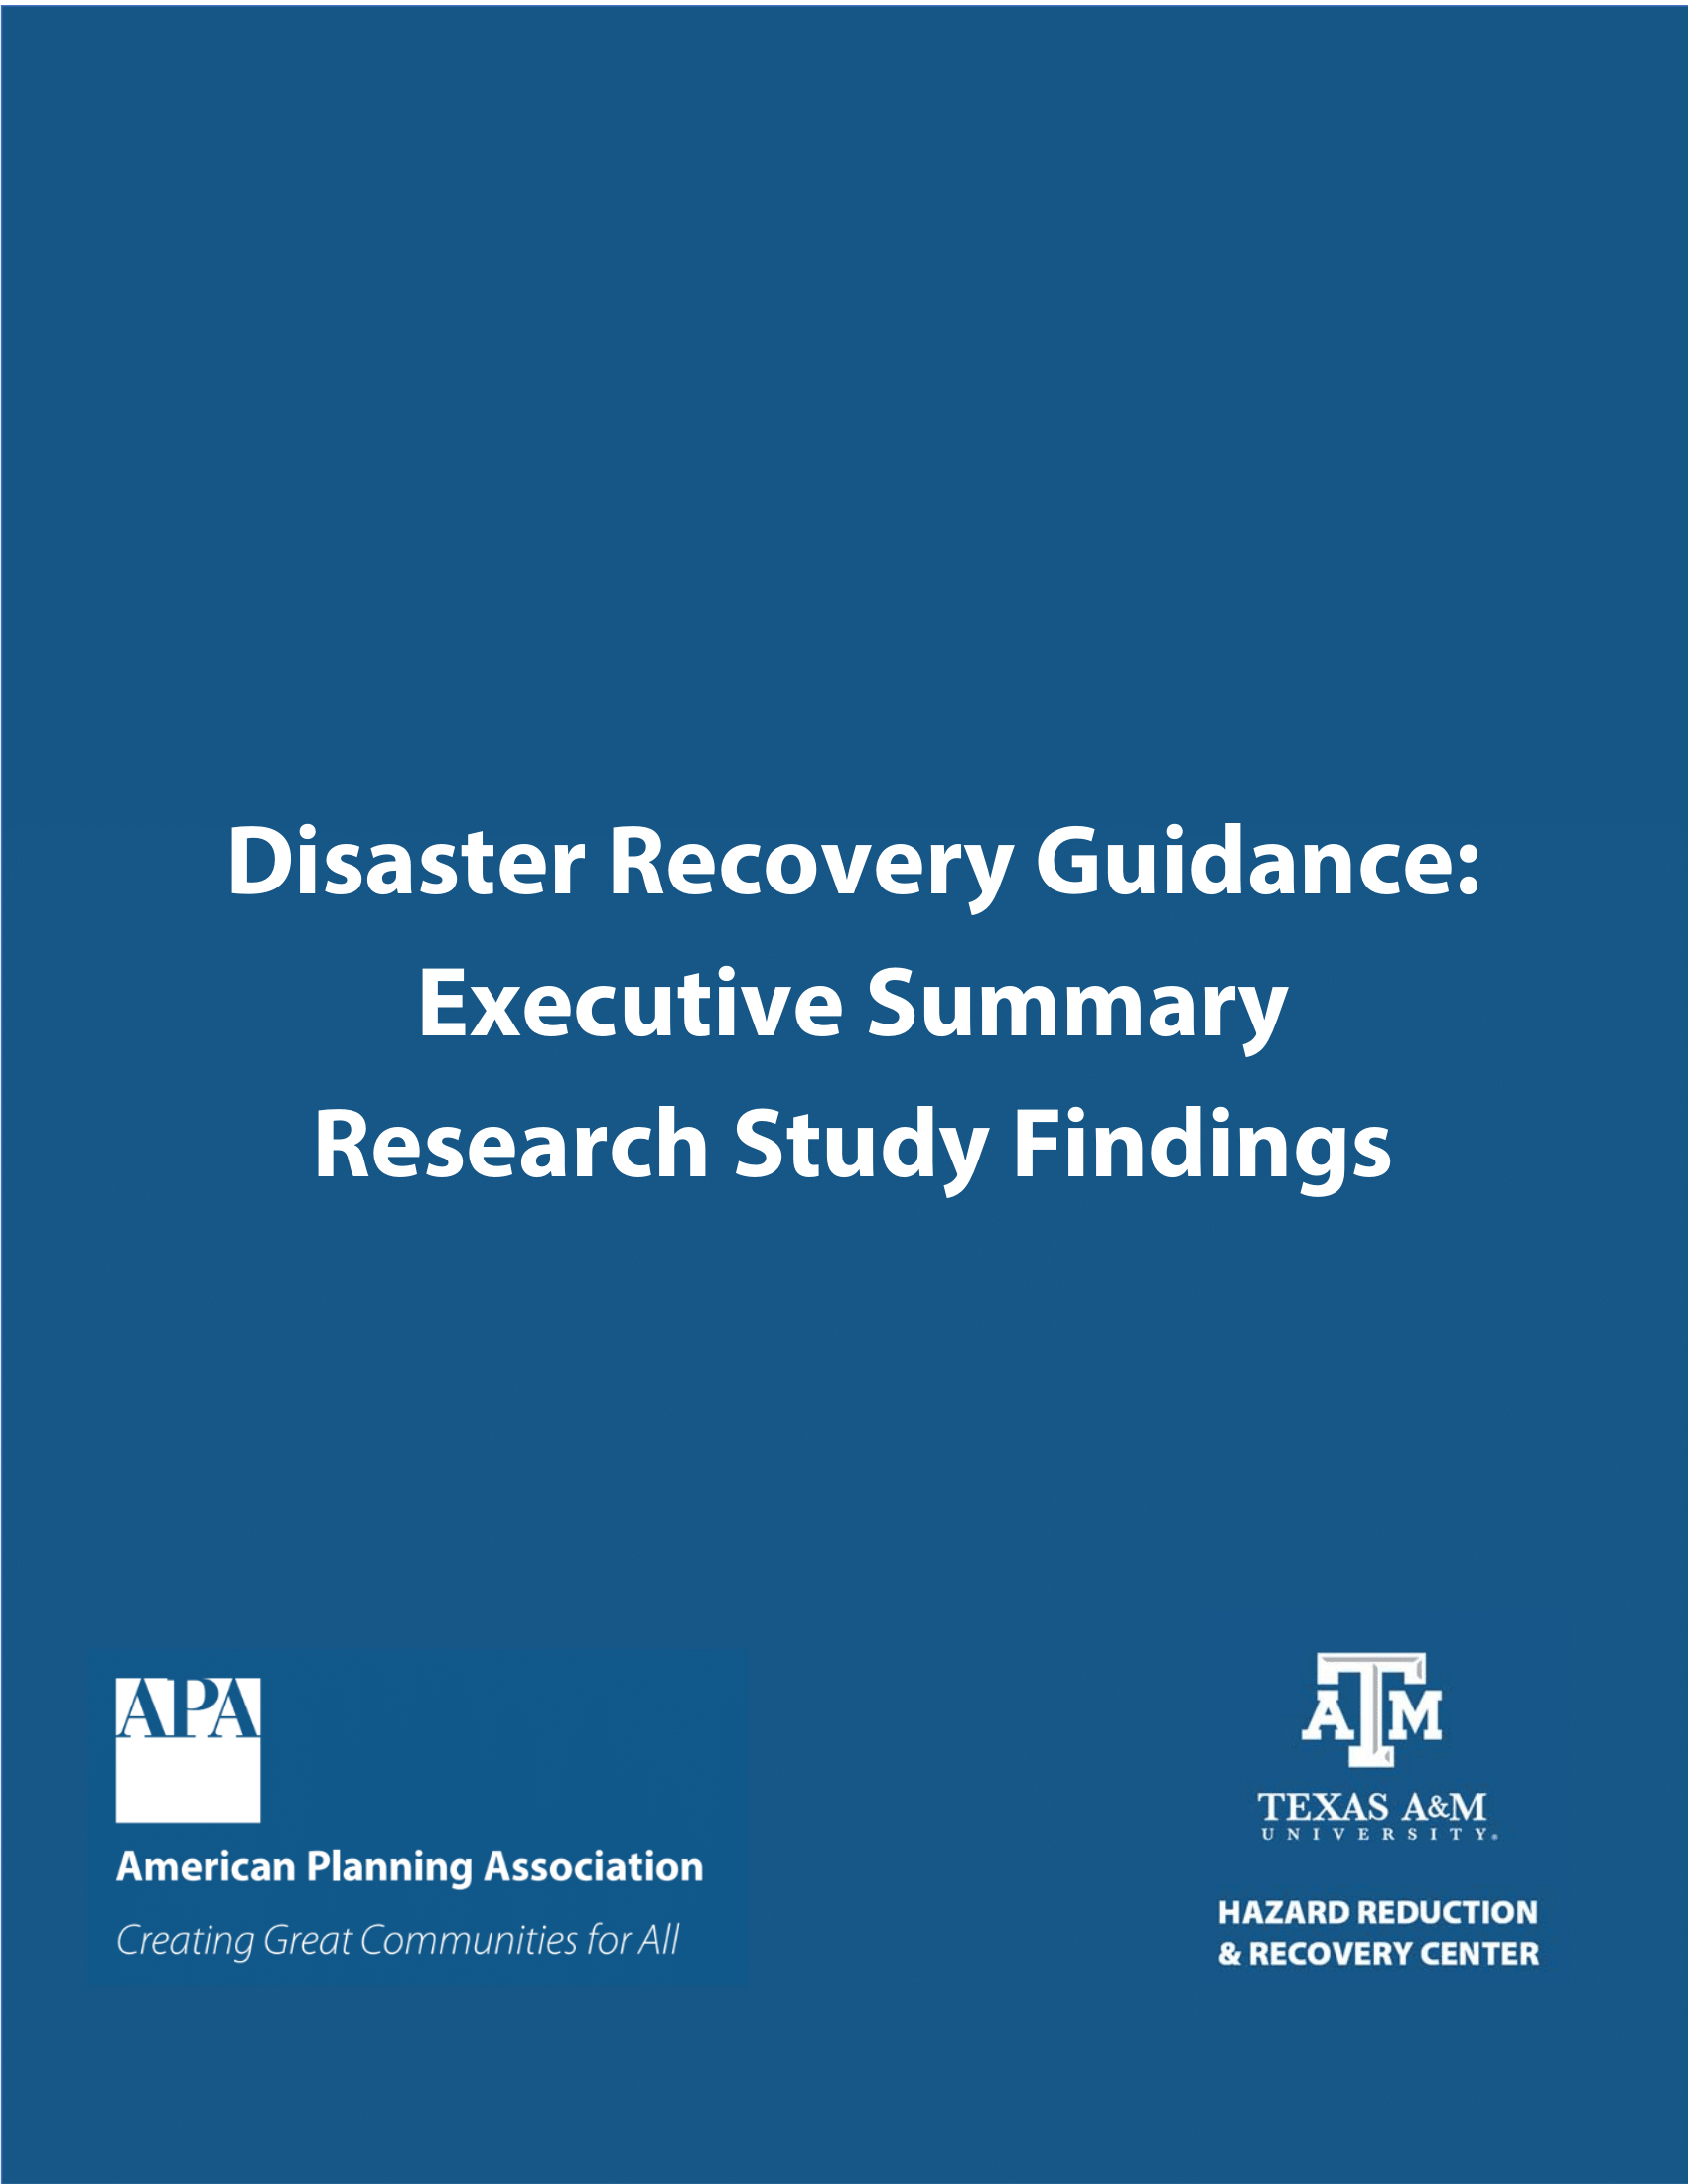 The cover page of Disaster Recovery Guidance: Executive Summary